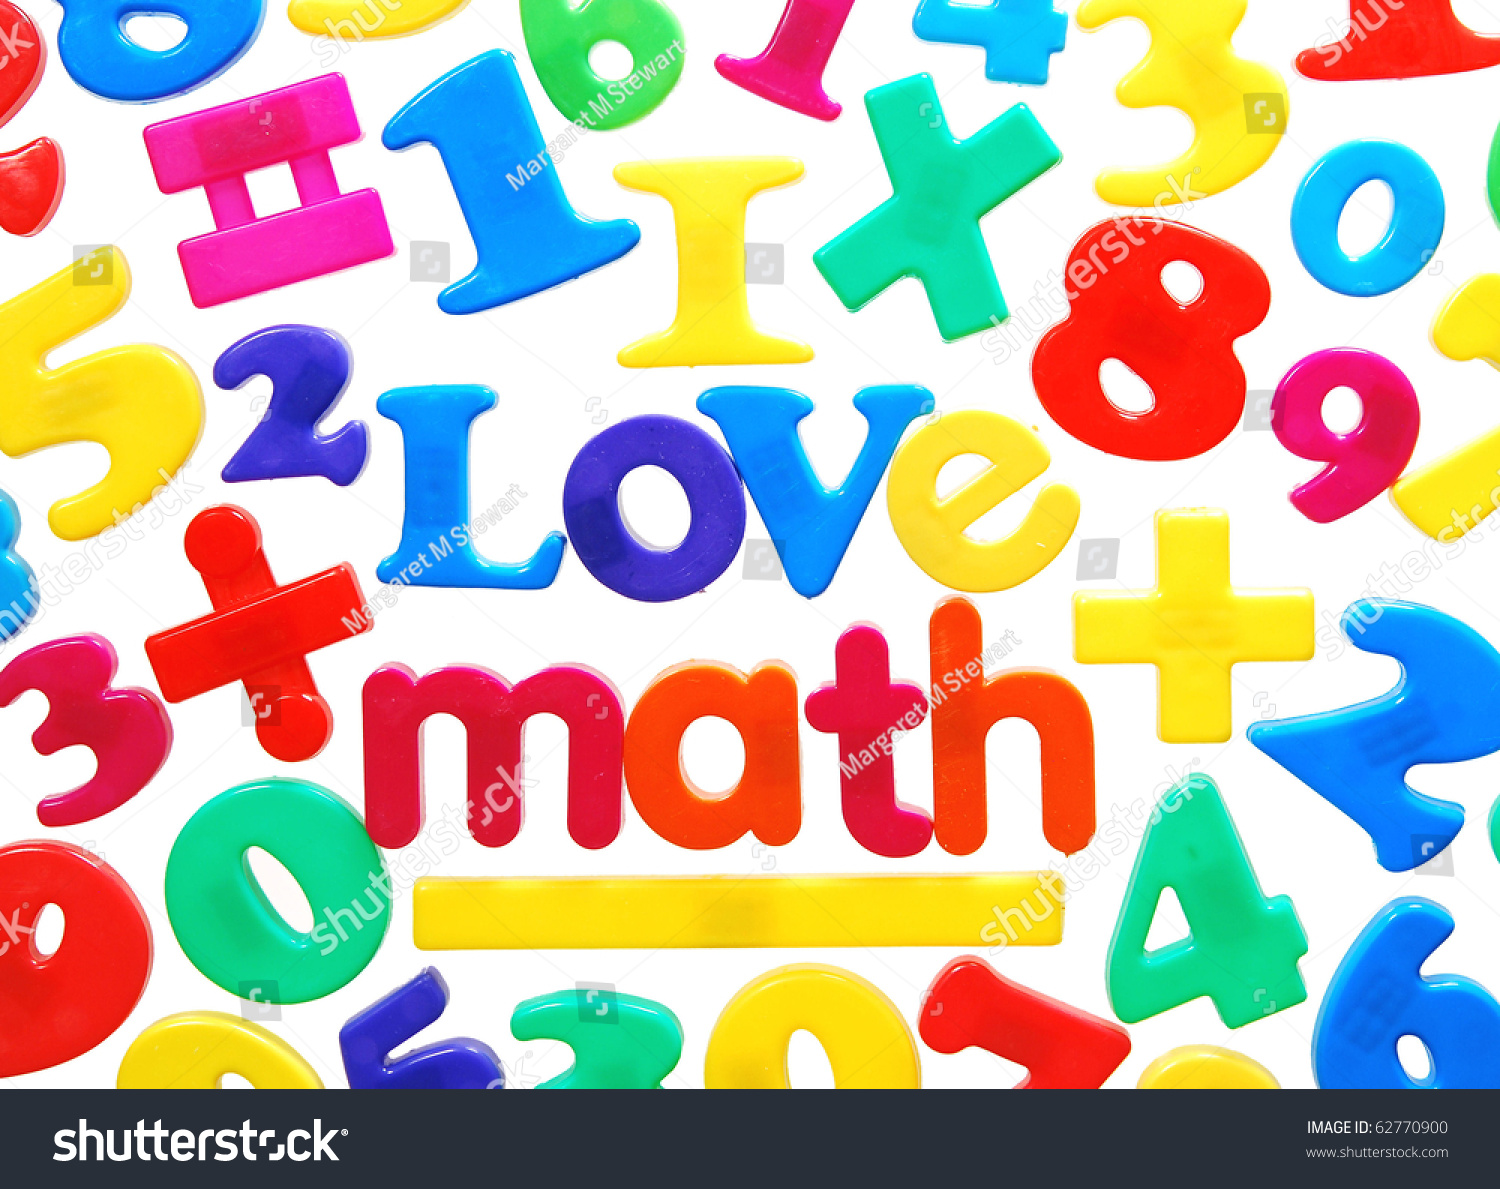 i love math written in colorful plastic letters surrounded by numbers and equation symbols